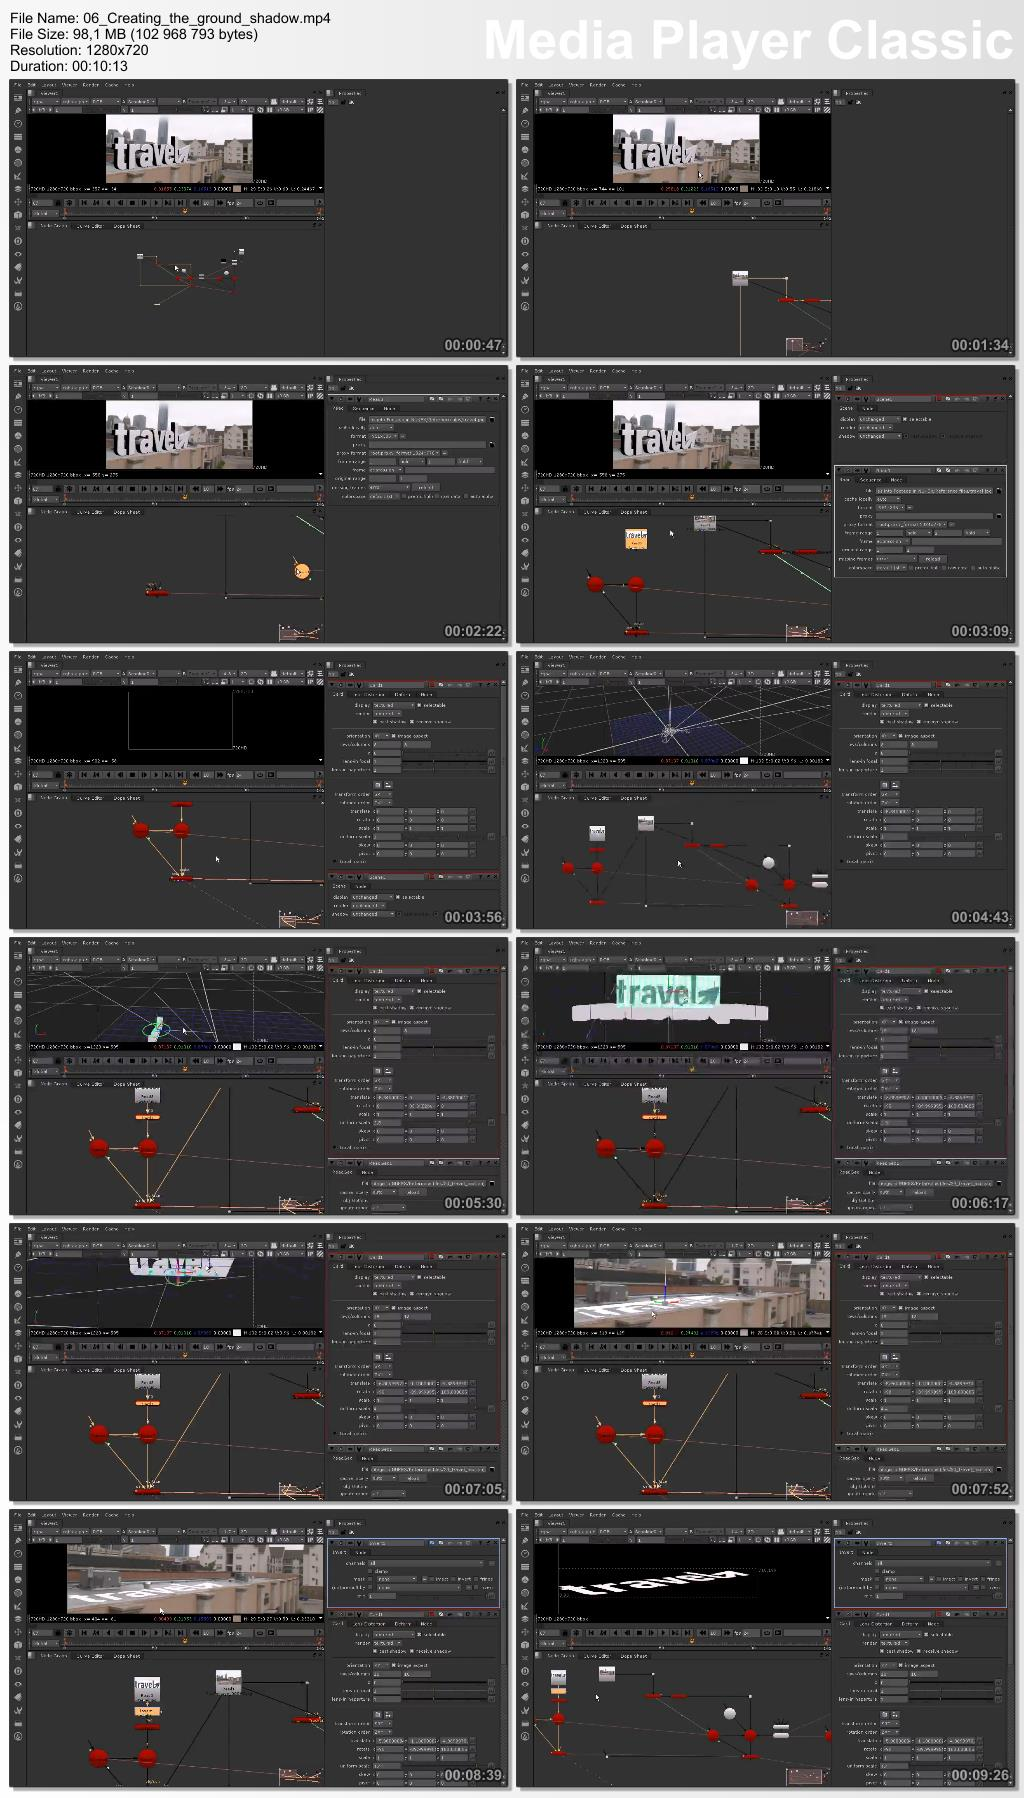 Dixxl Tuxxs - Integrating 3D Titles into Footage in NUKEX